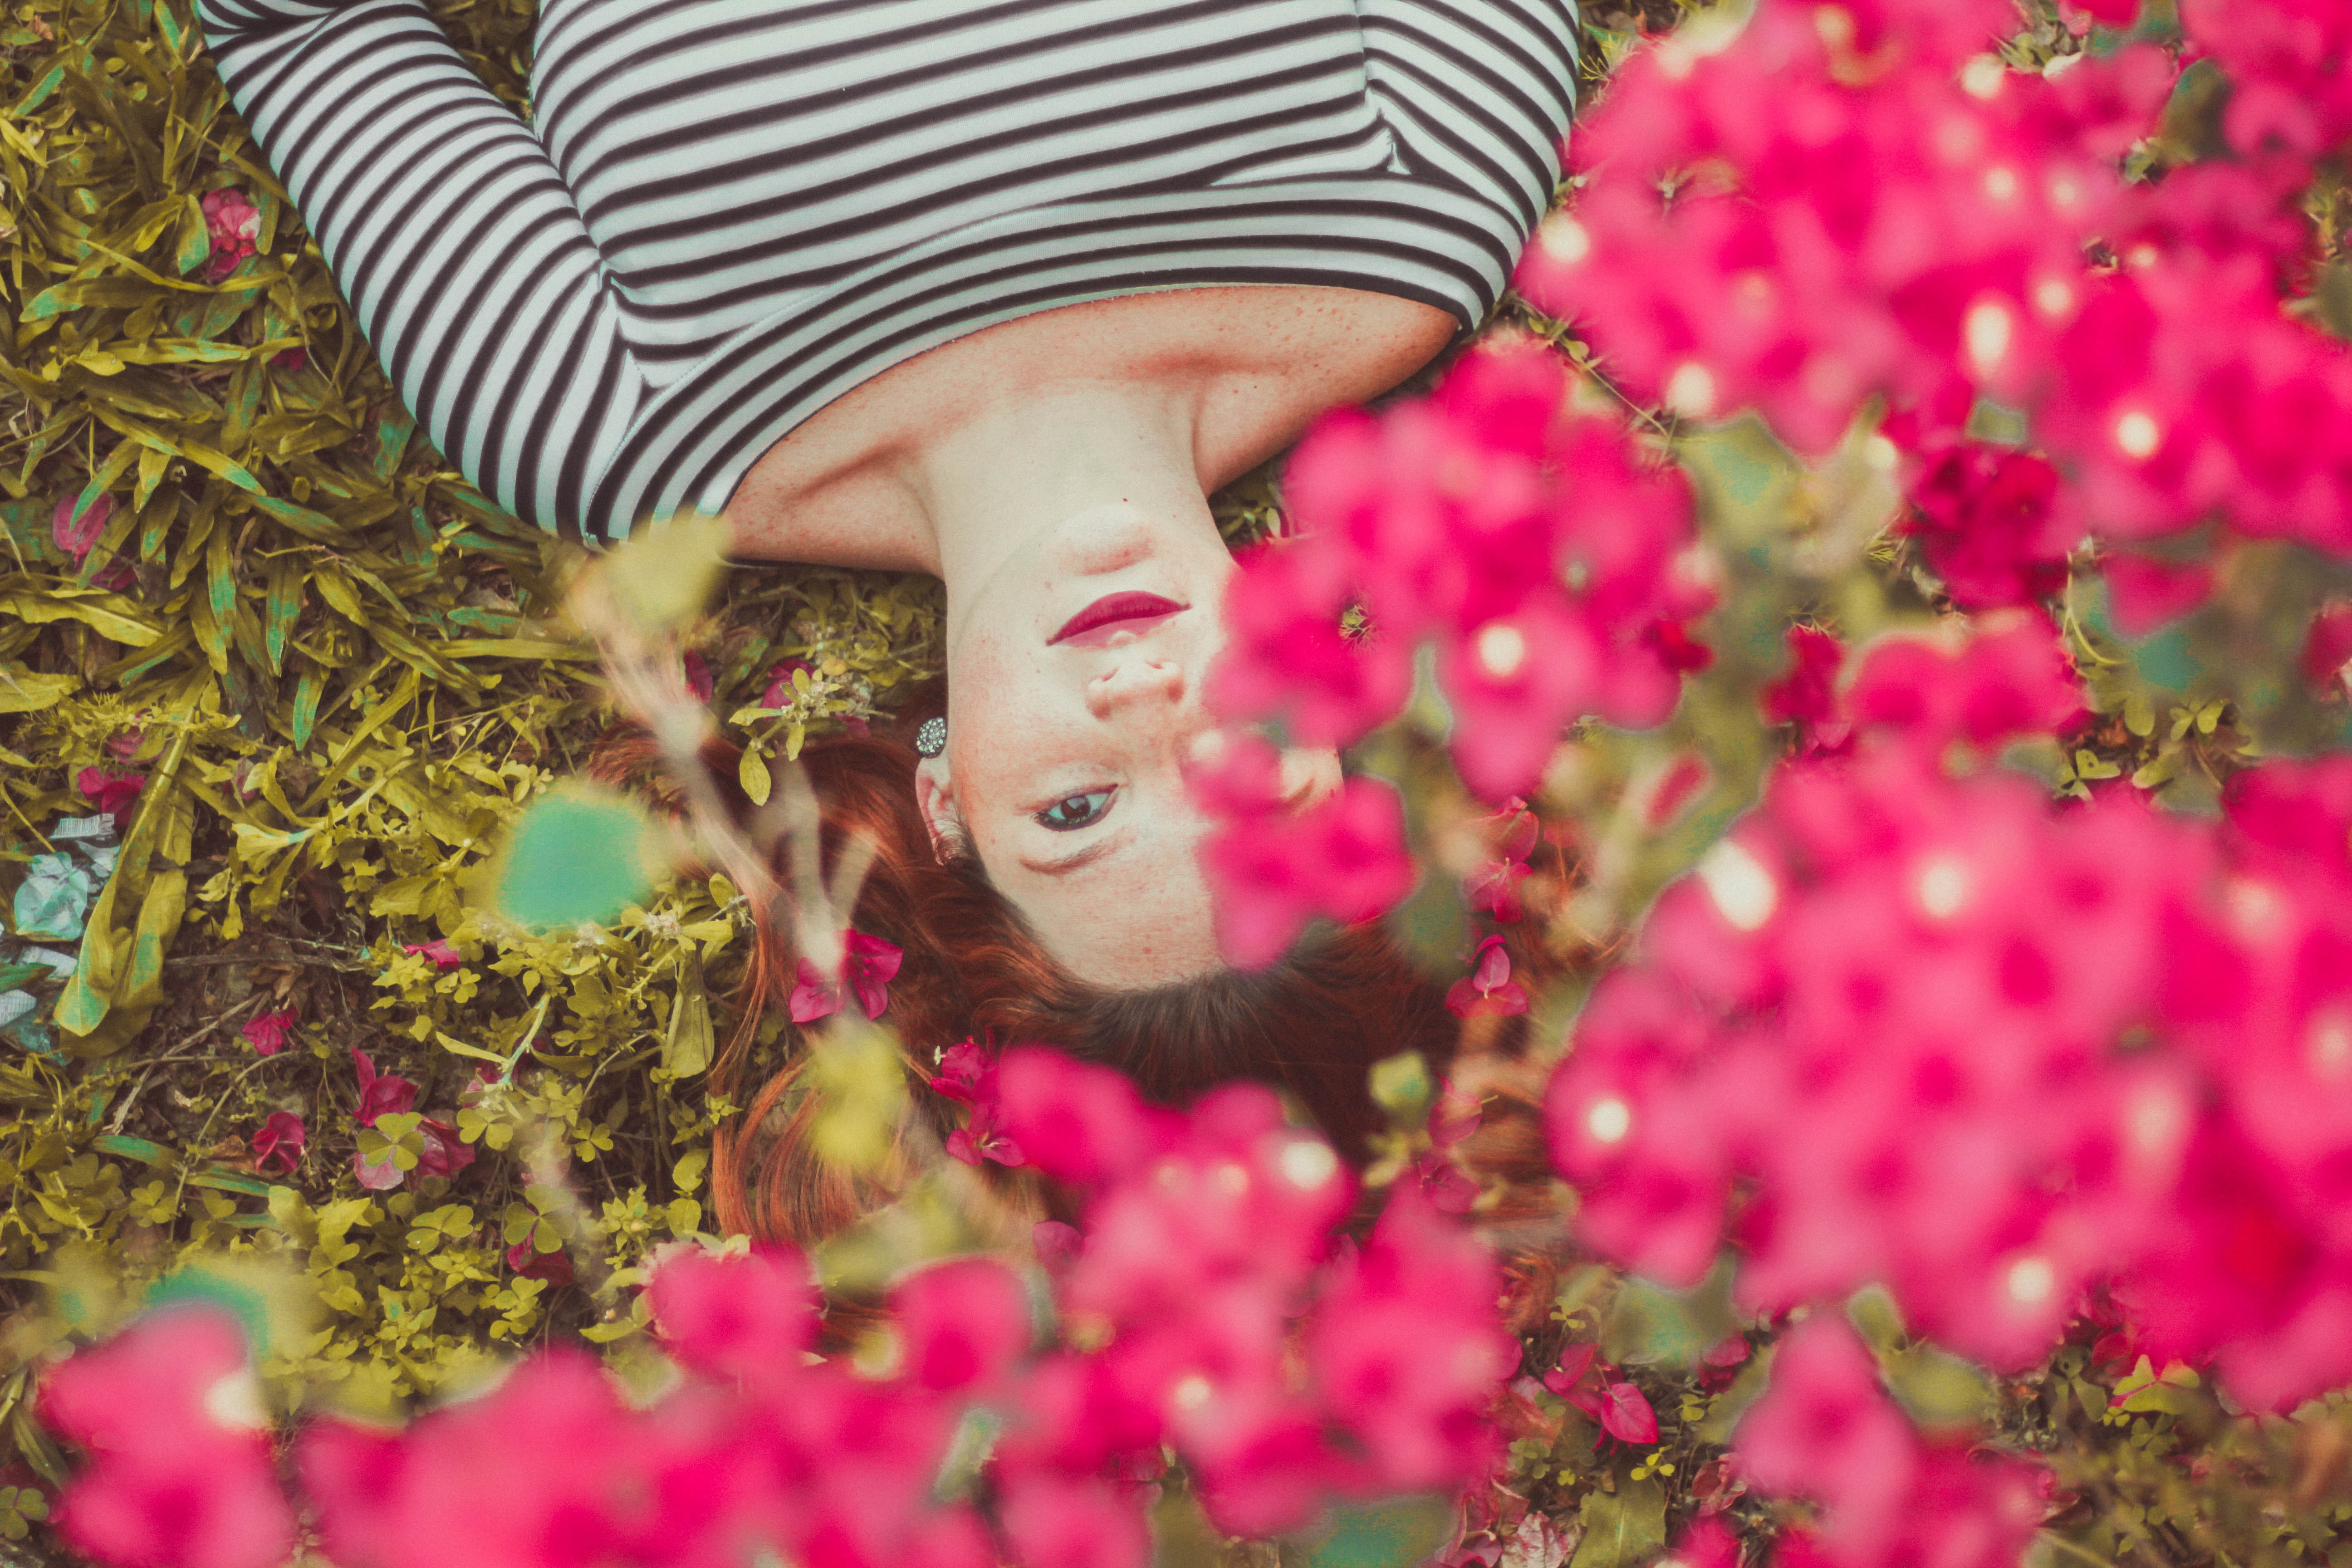 A woman lying on her back in the grass with pink flowers over her head